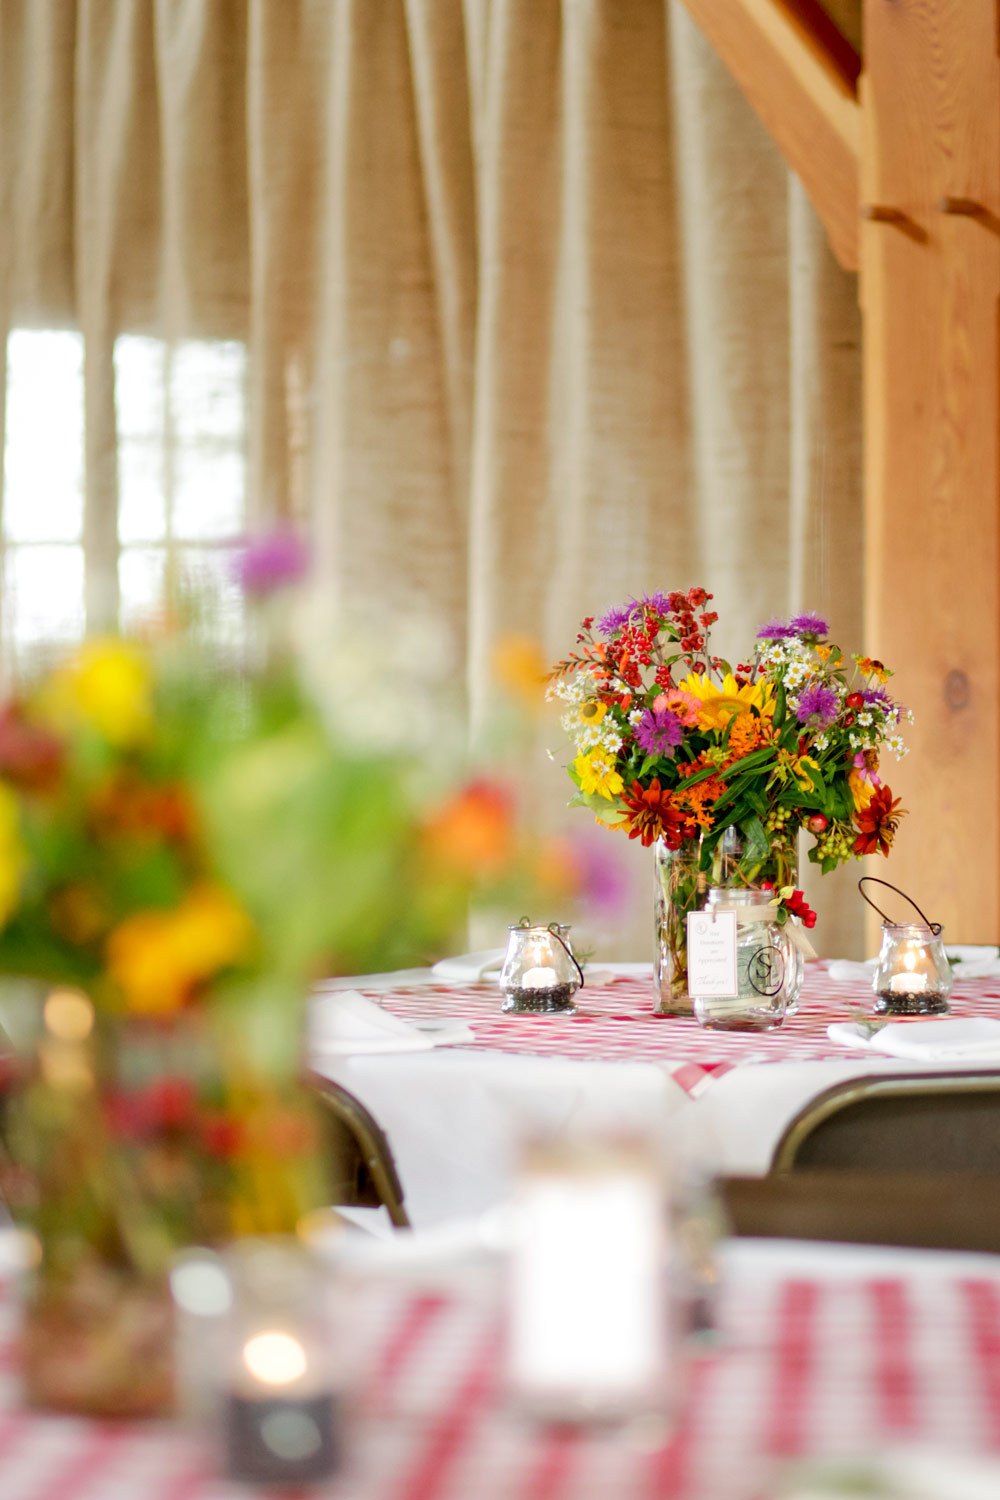 event-photographer-madison-wi-dane-county-gala-fundraiser-ruthie-hauge-photography-farm-to-table 08.jpg